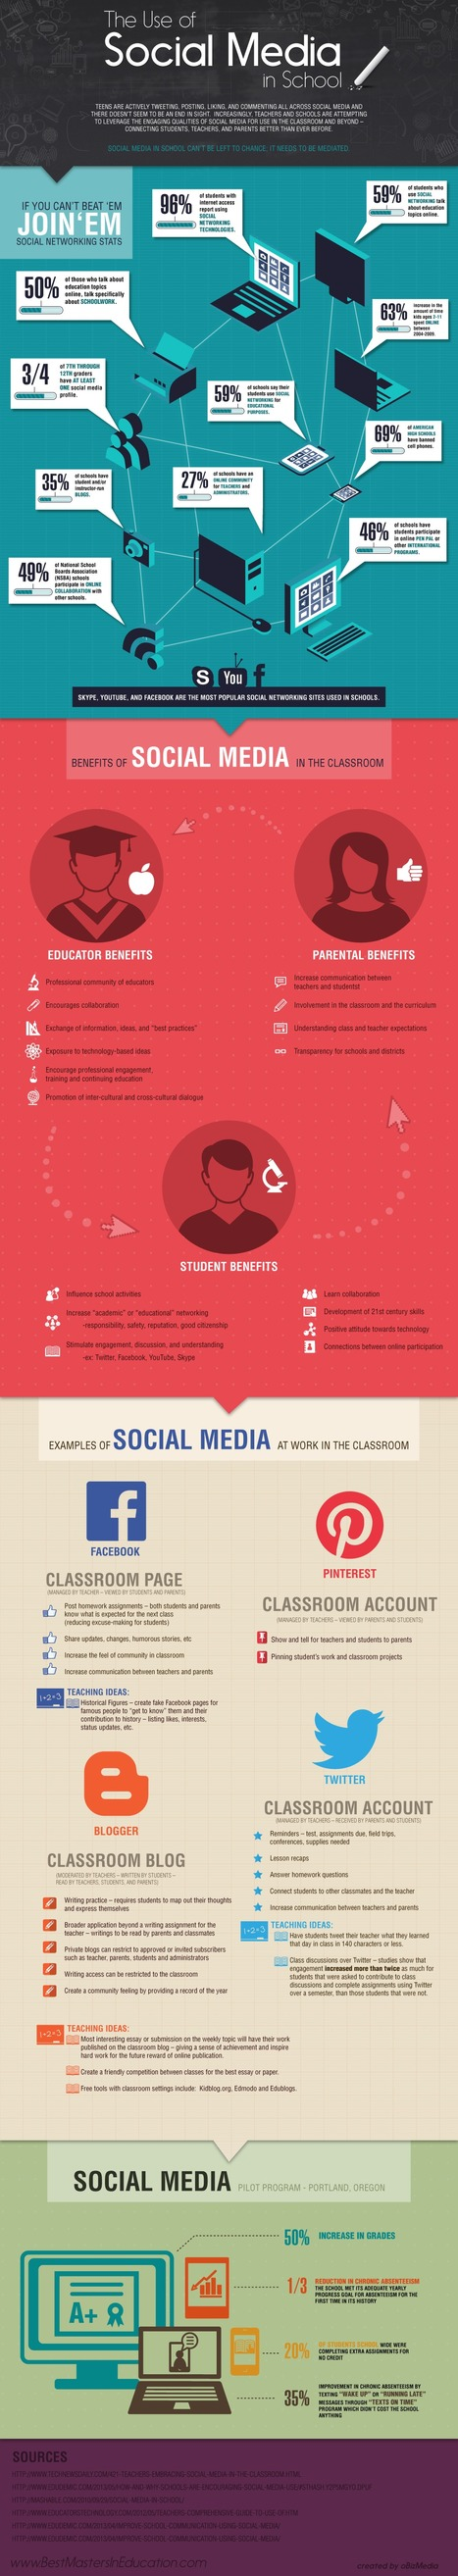 Social Media 101: Is There a Place For Social Media in Classrooms? [Infographic] | good sciences teaching stuff - education XXIème | Scoop.it